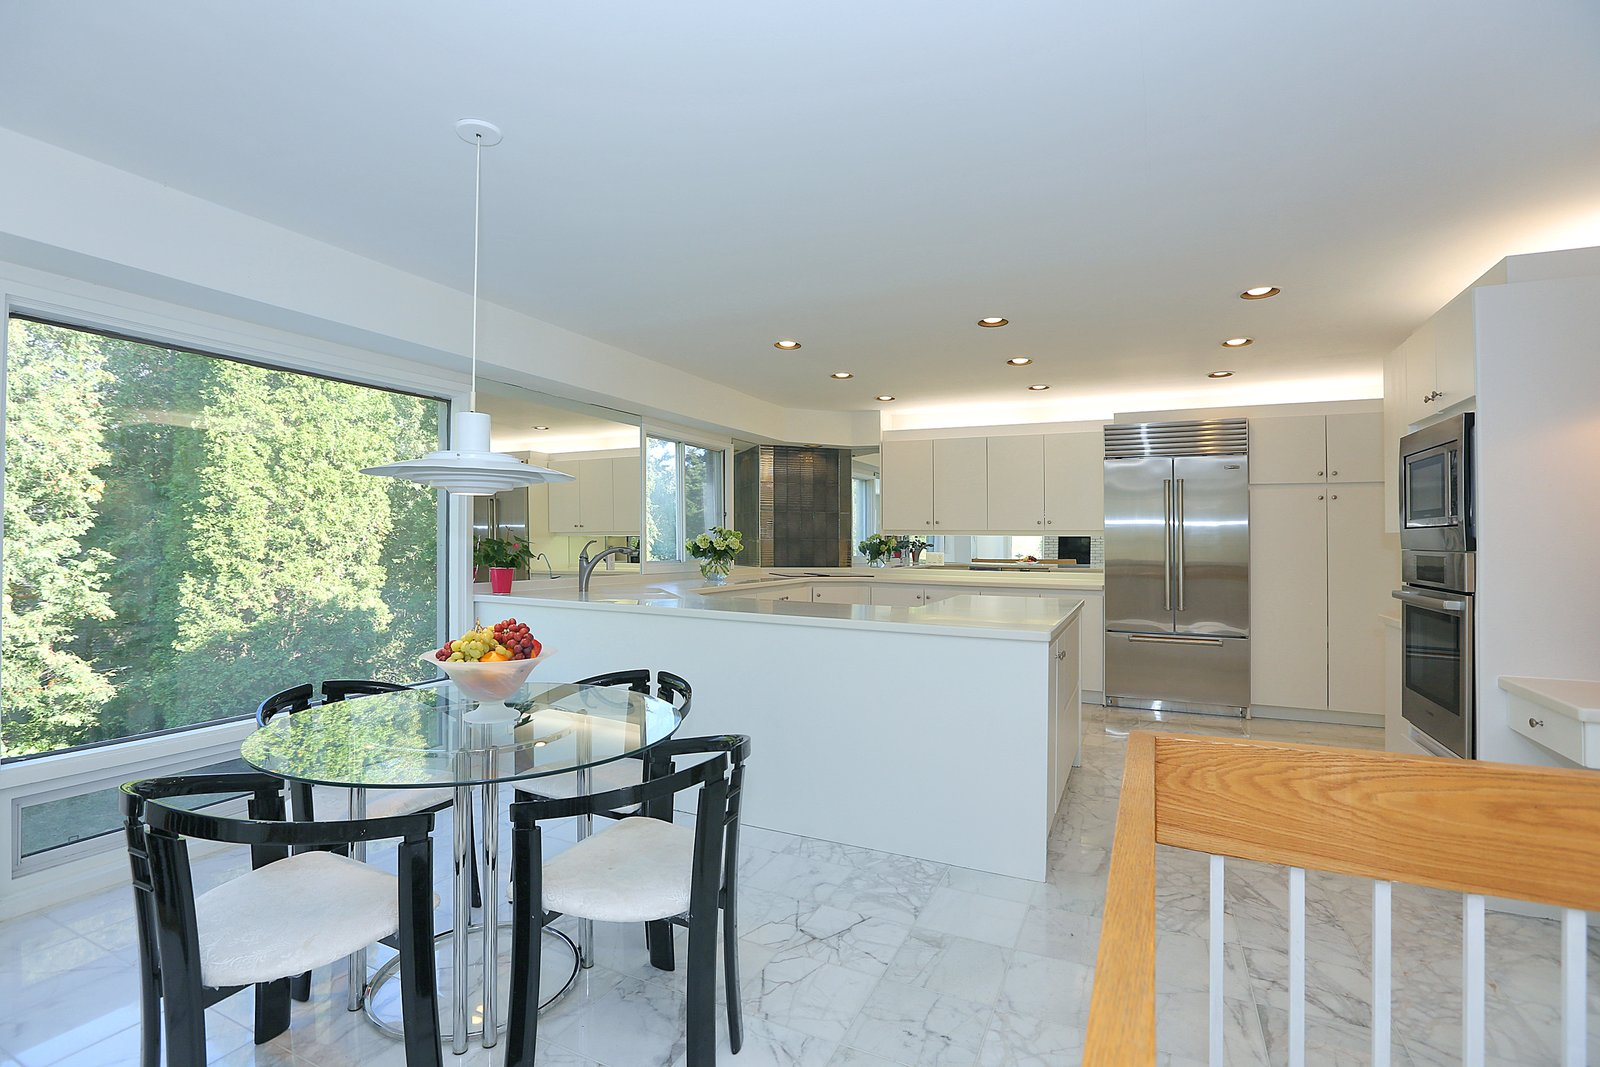 Photo 8 of 14 in An Airy Toronto Estate For Sale Boasts Excellent ...